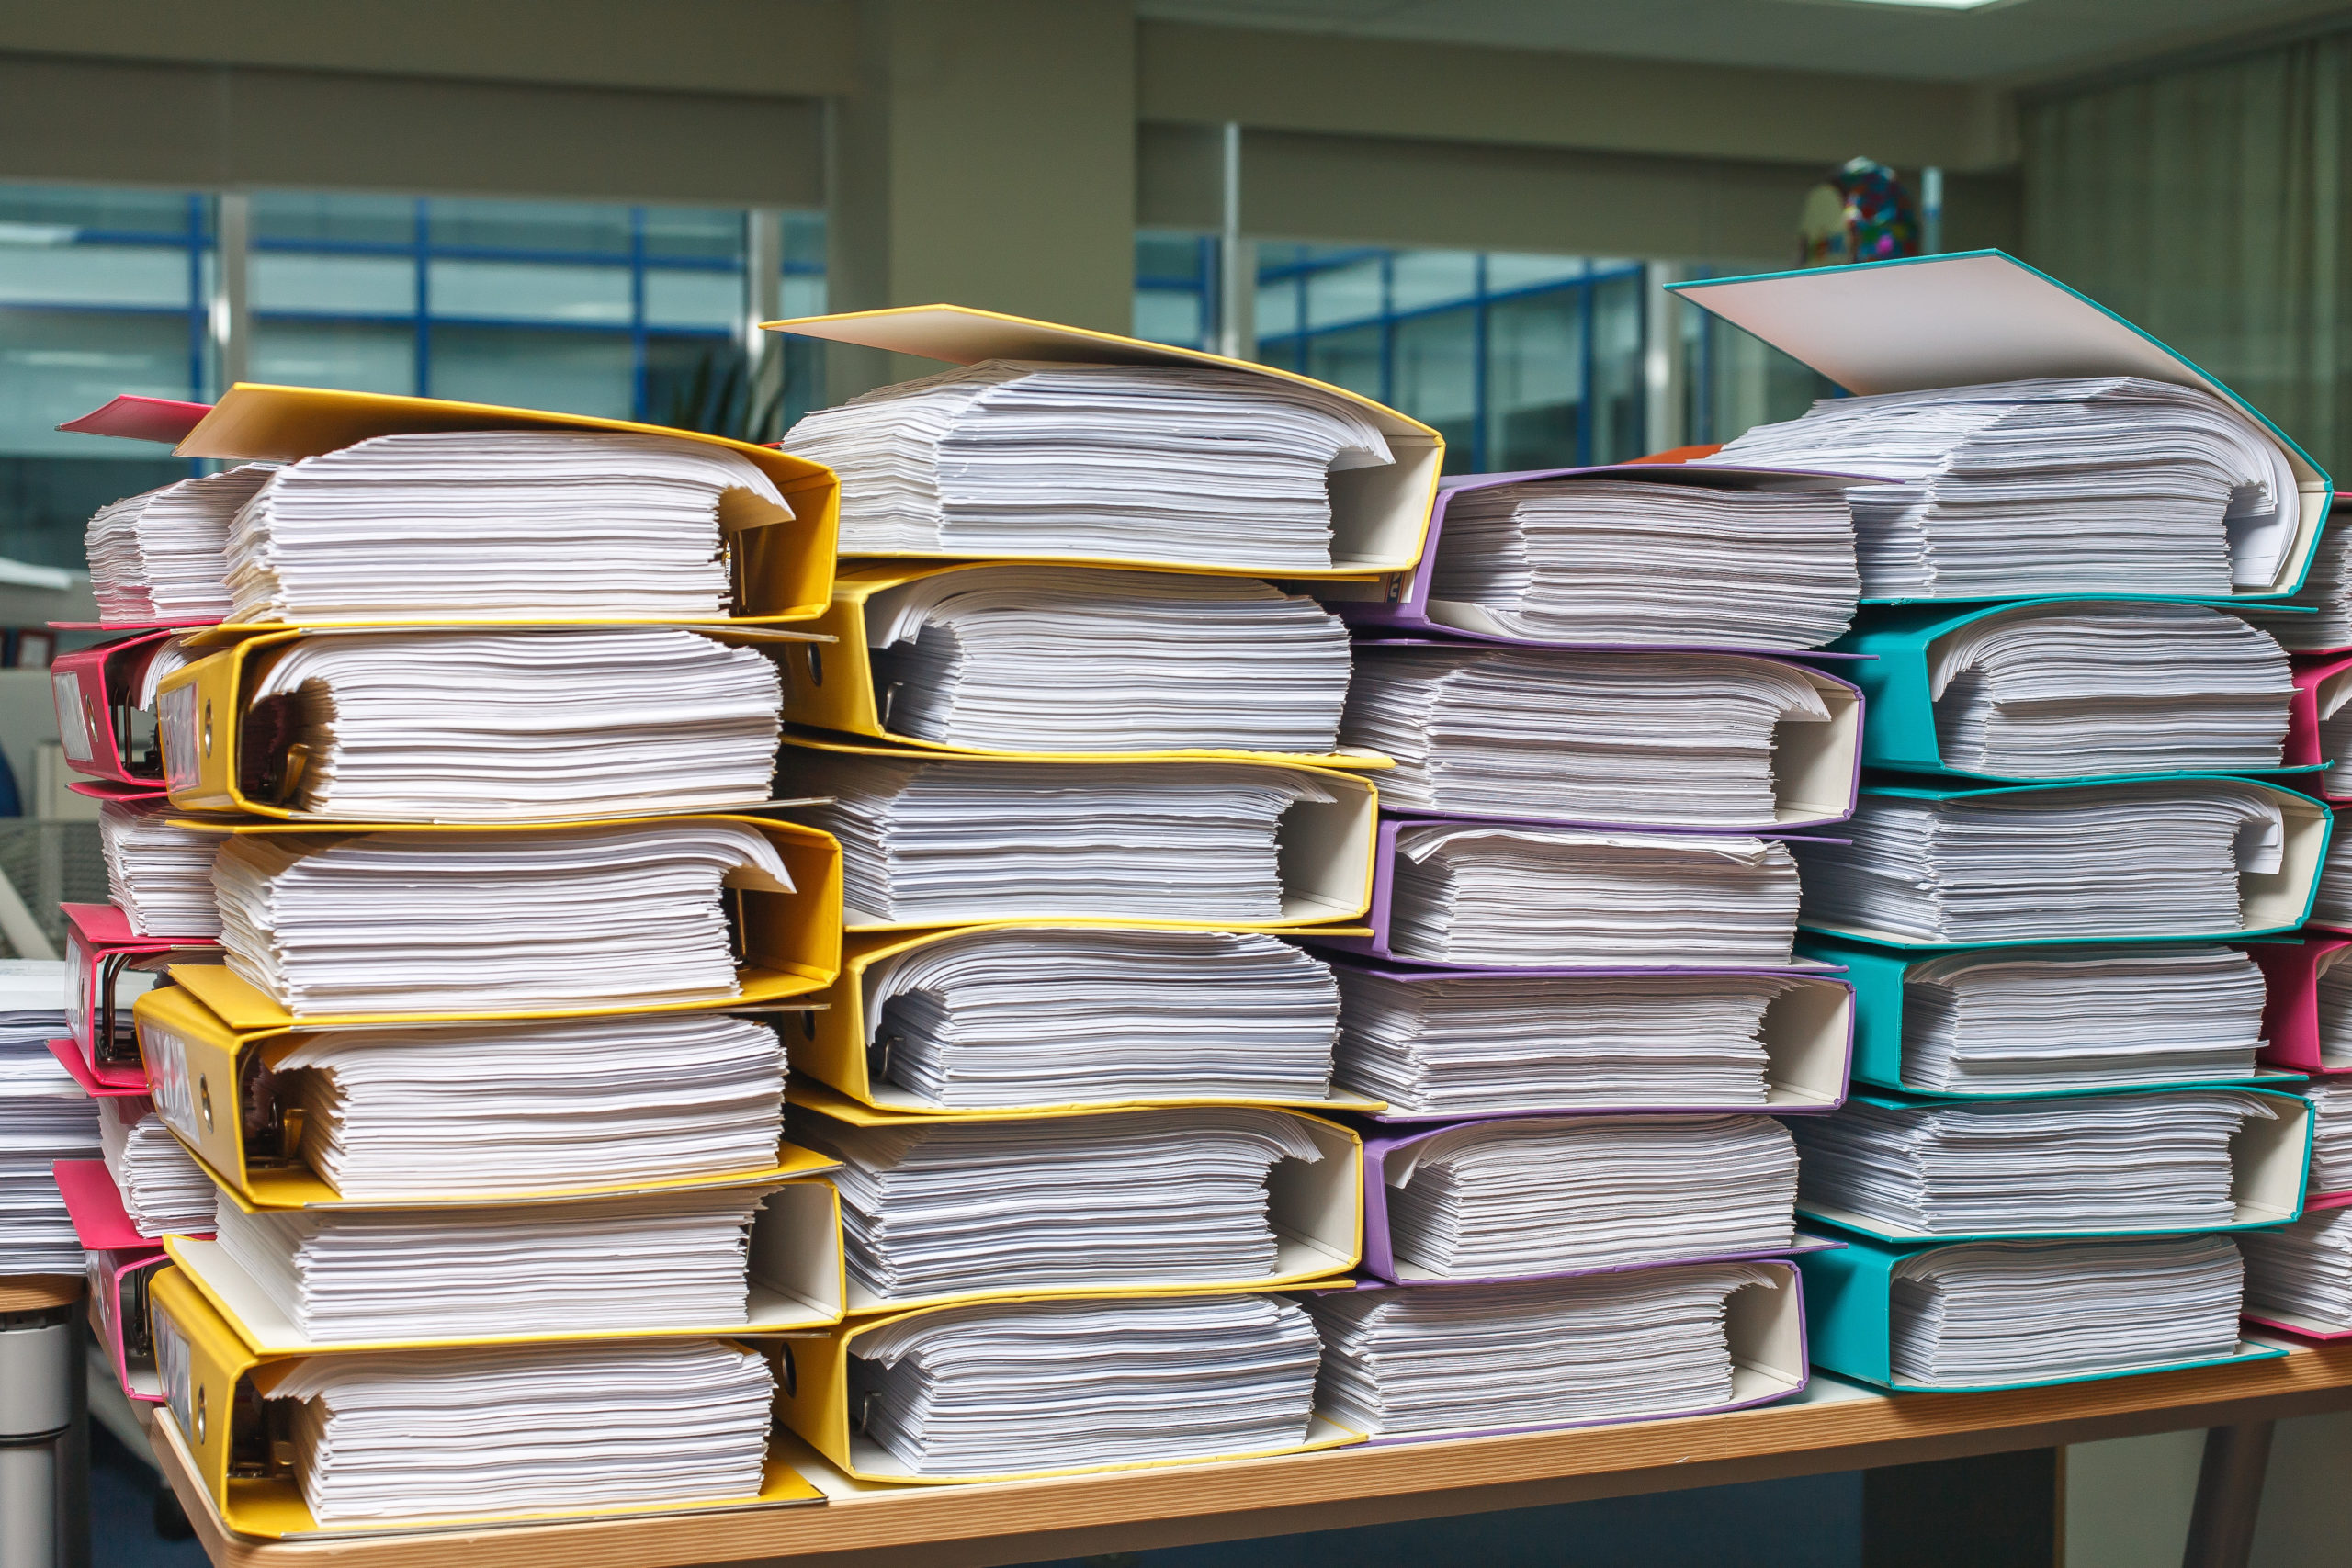 Avocats, comptables, notaires : où stocker ses archives ?